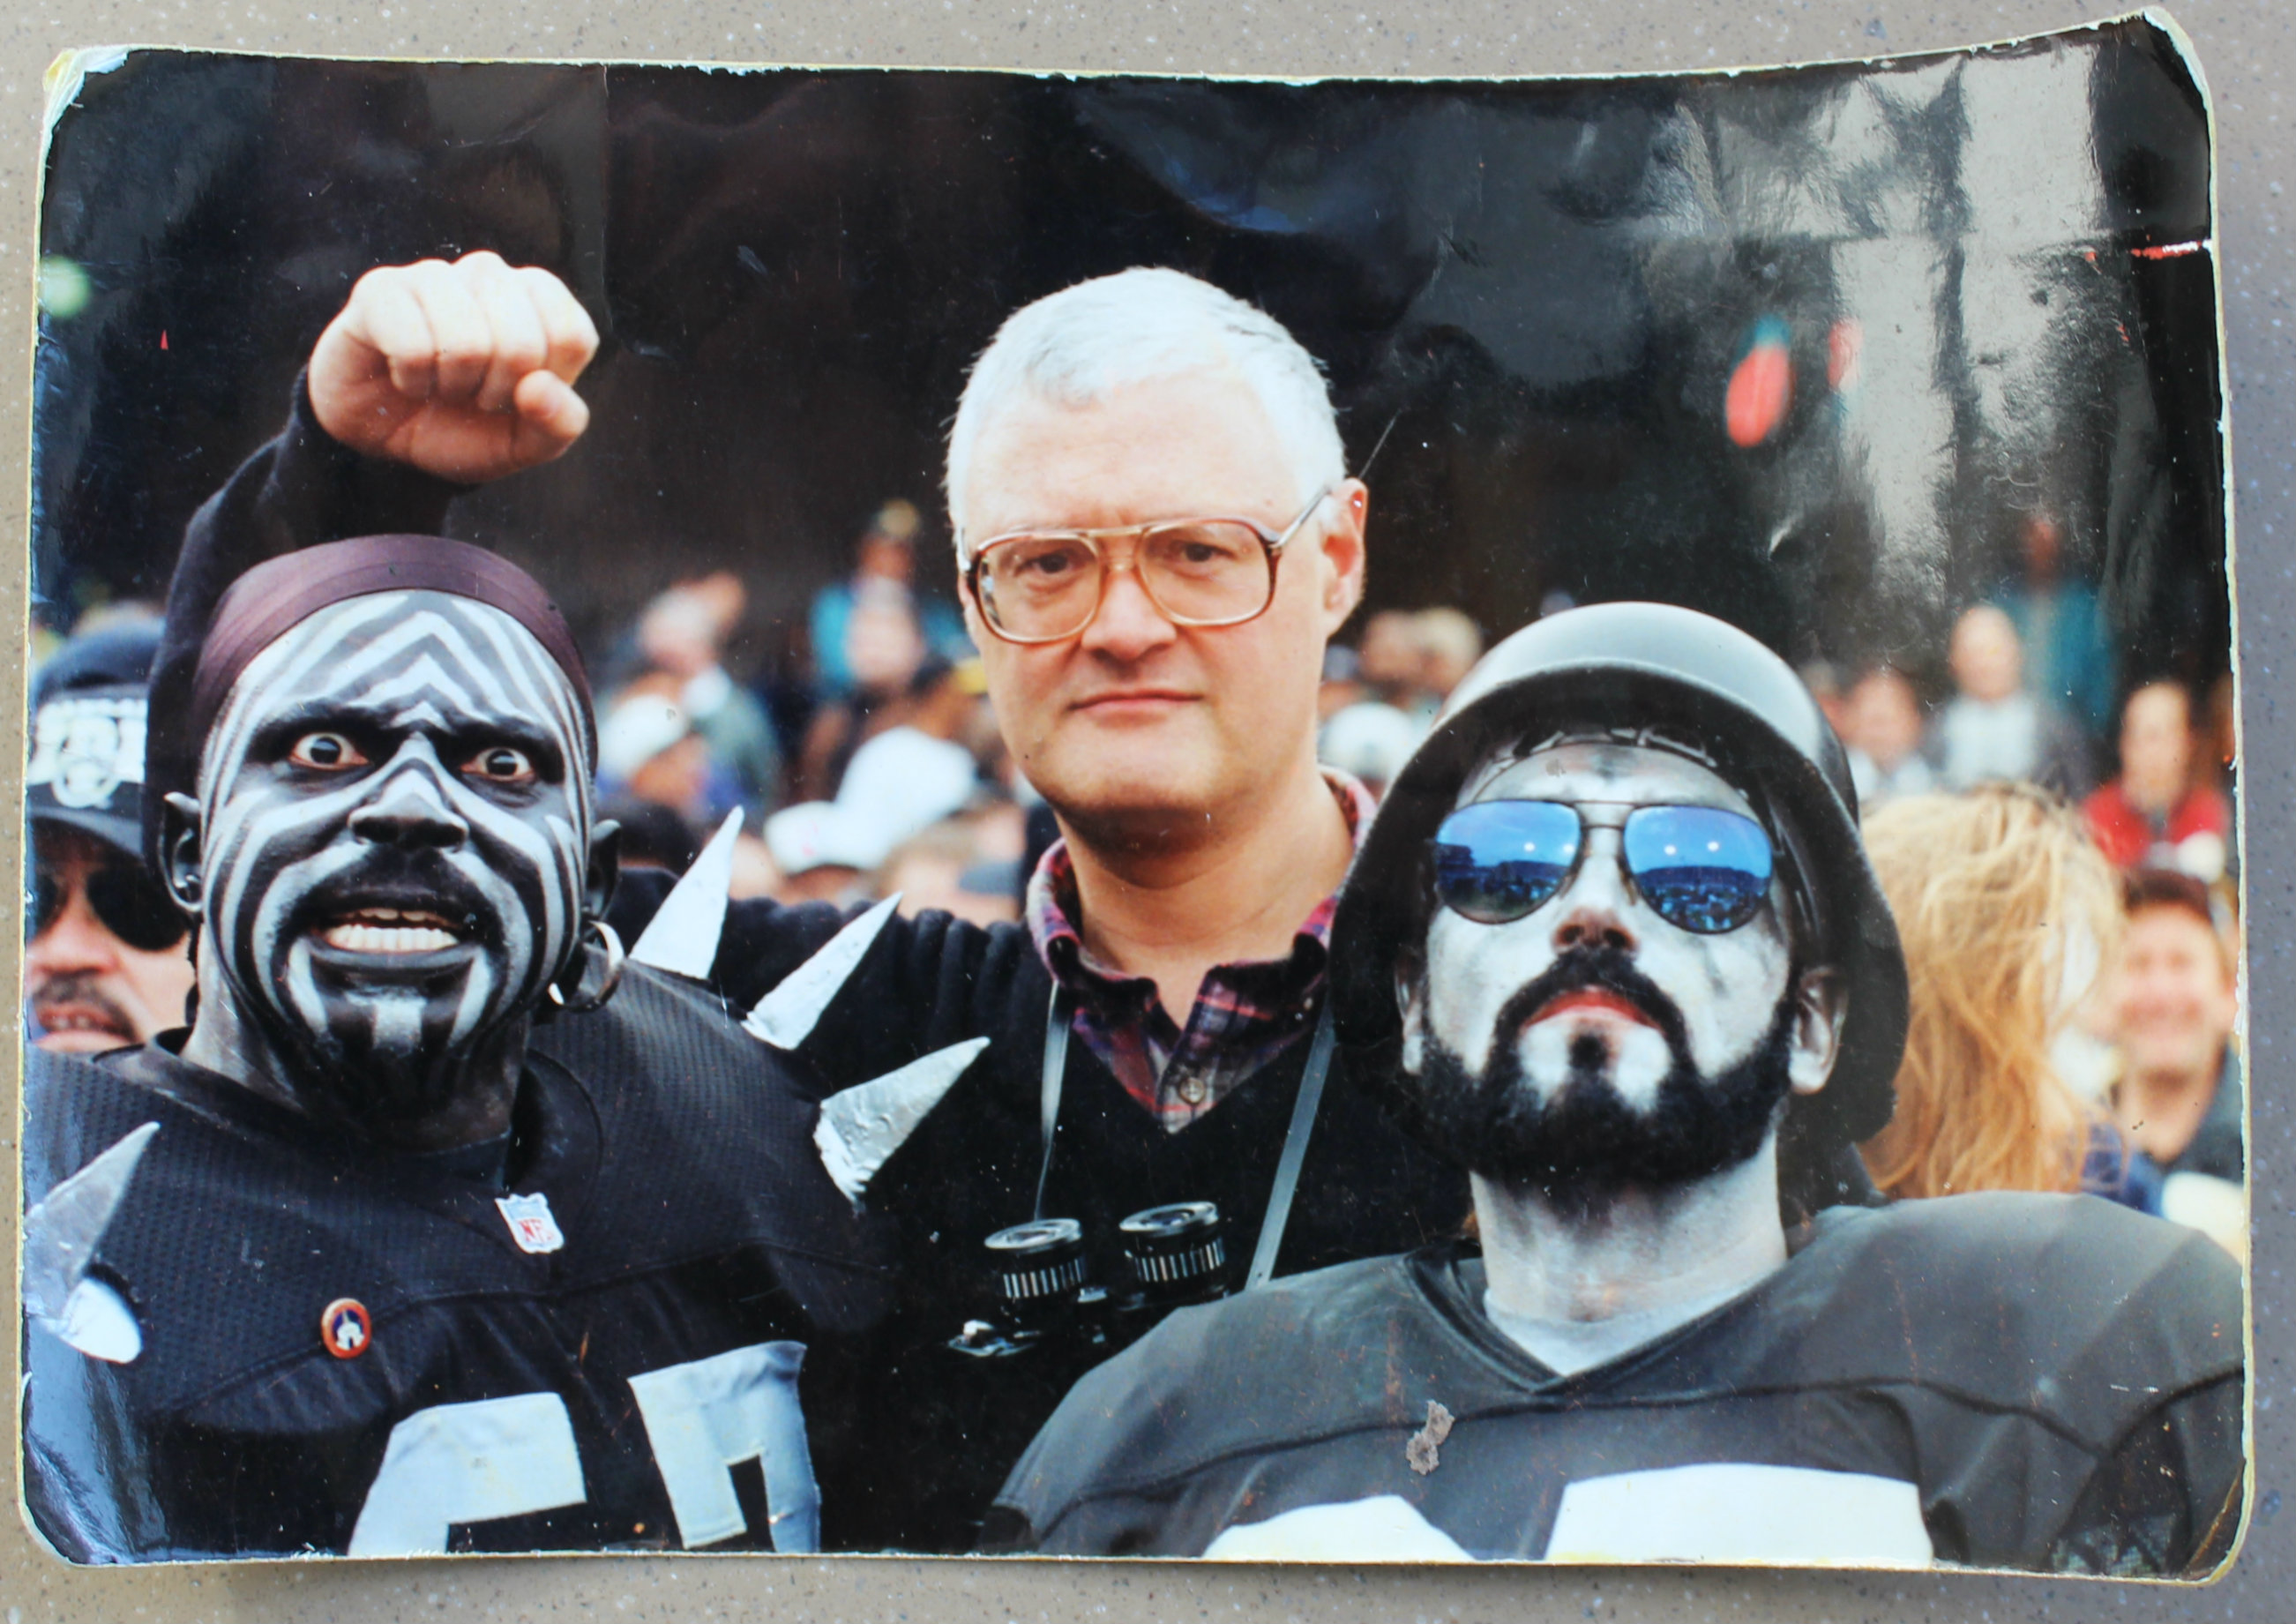 Downs (center) with Oakland Raiders fans.